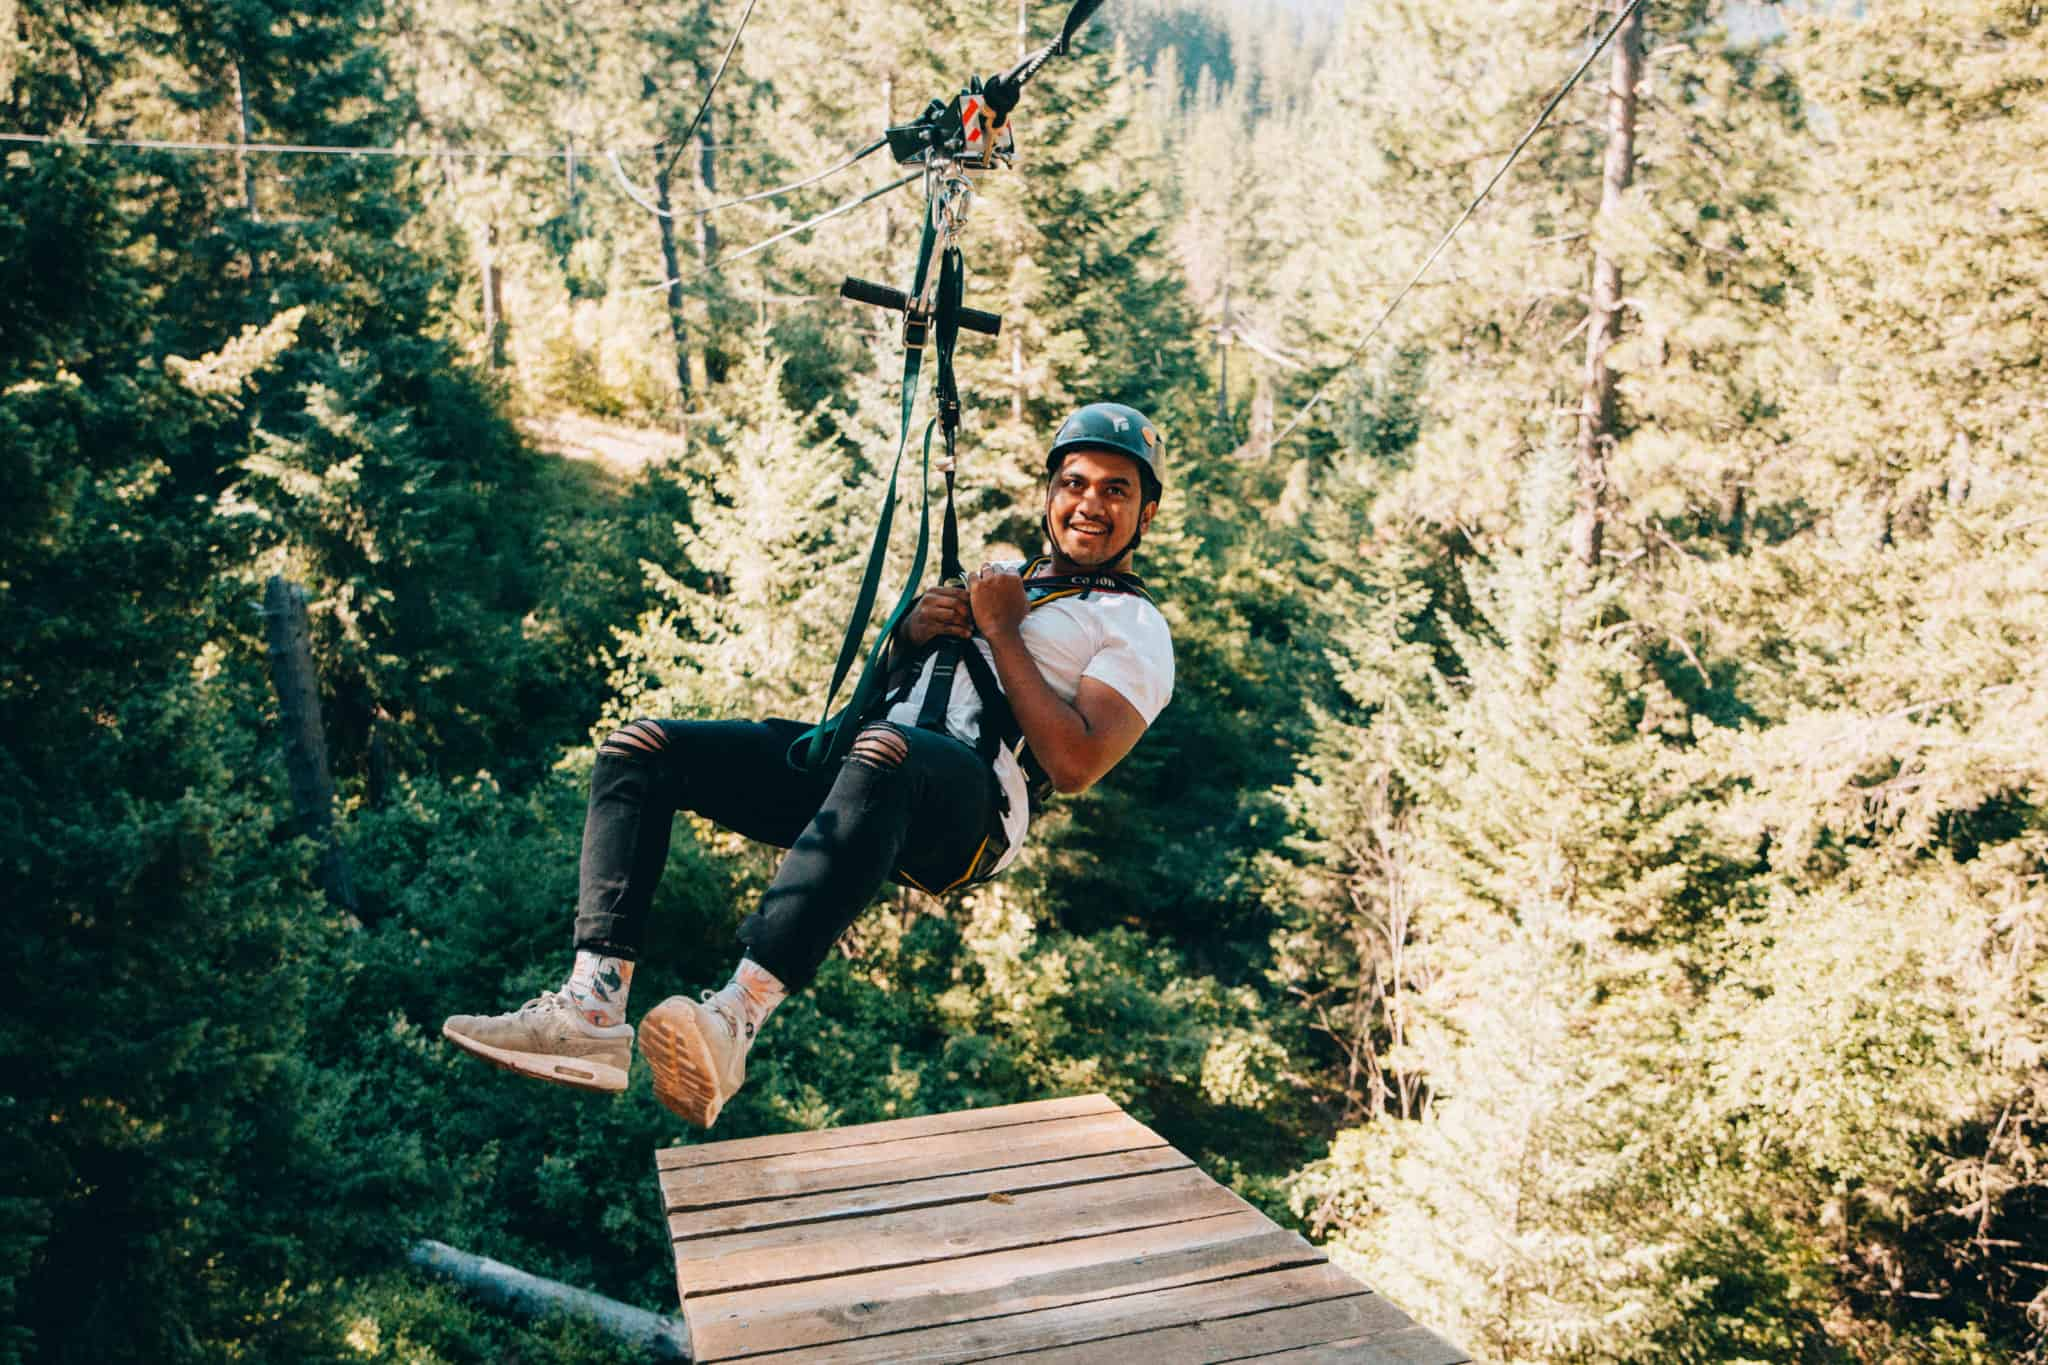 Berty Mandagie Timberline Adventures Zip Lines Coeur d'Alene Idaho